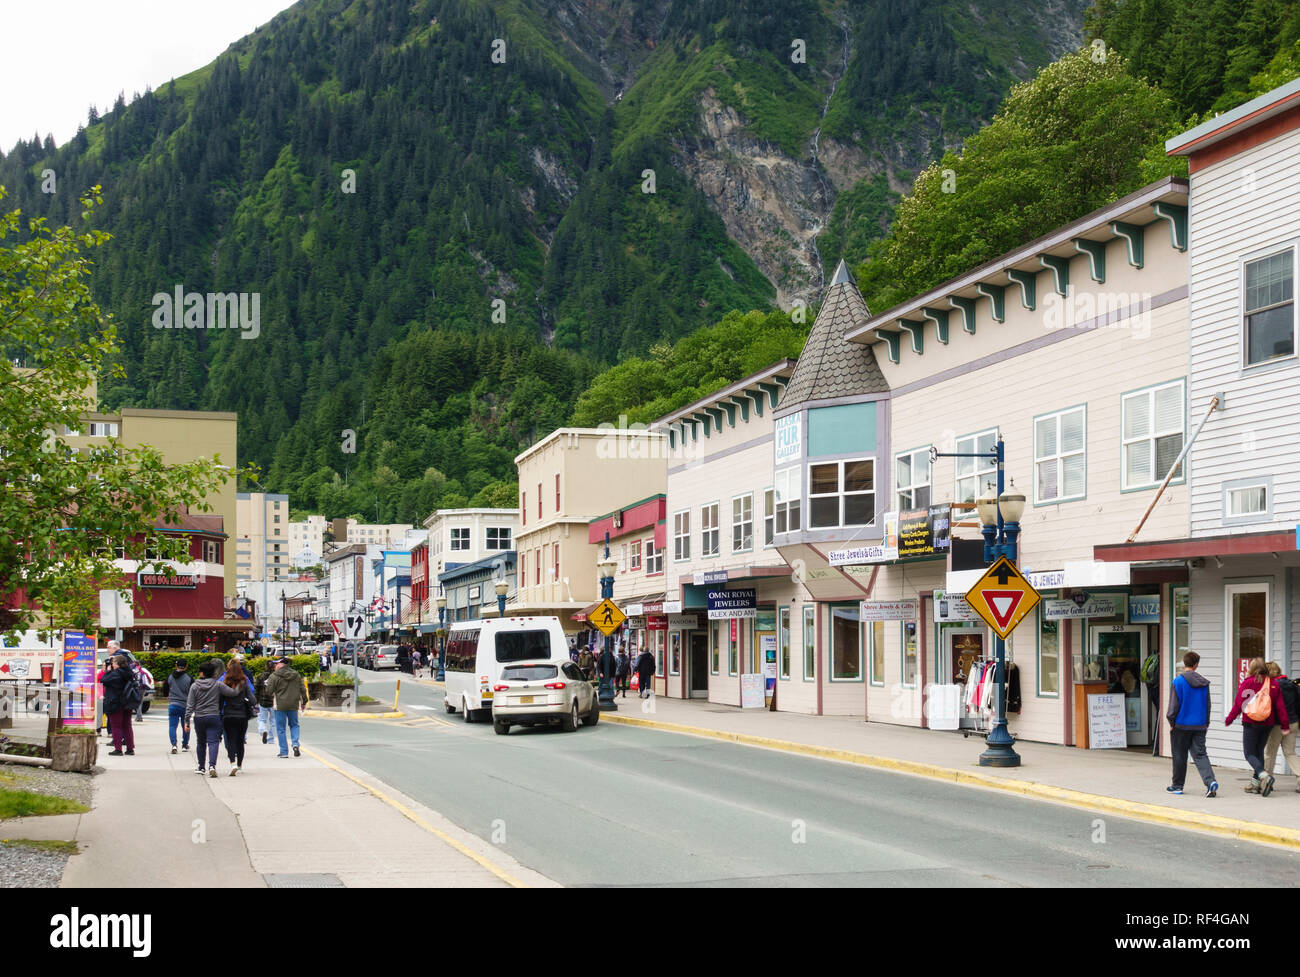 Tourists and sightseers visit shops and stores along S. Franklin Street in downtown Juneau, Alaska. Steep mountainsides provide a dramatic backdrop. - Stock Image